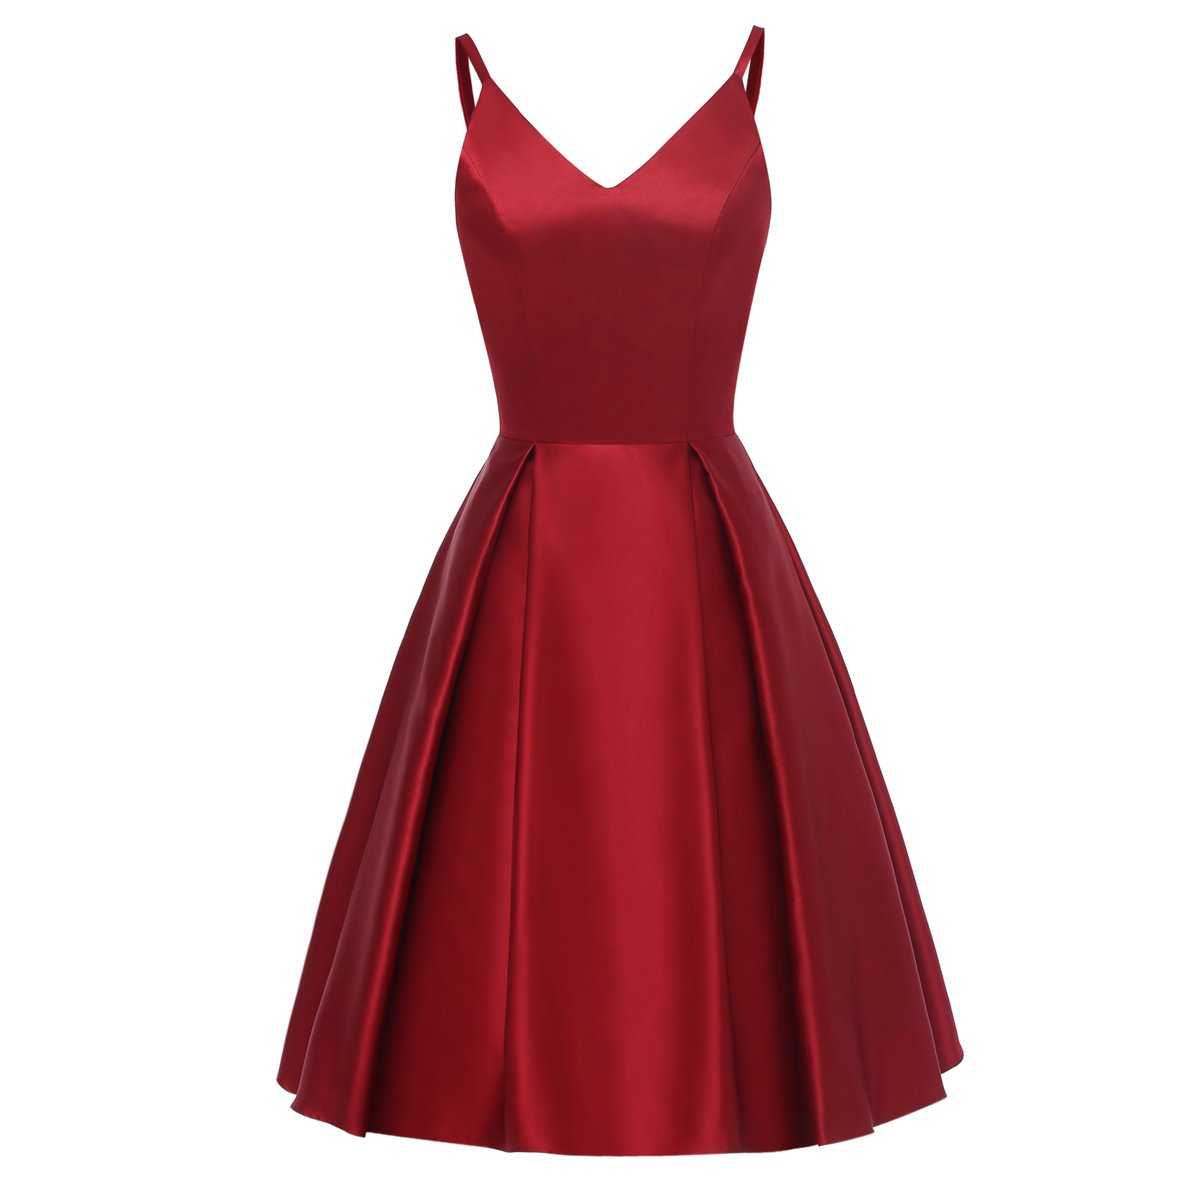 Available at Amazon: TTYbridal V-Neck Mini Dress Short Satin Prom Cocktail Gown With Pockets Hd11